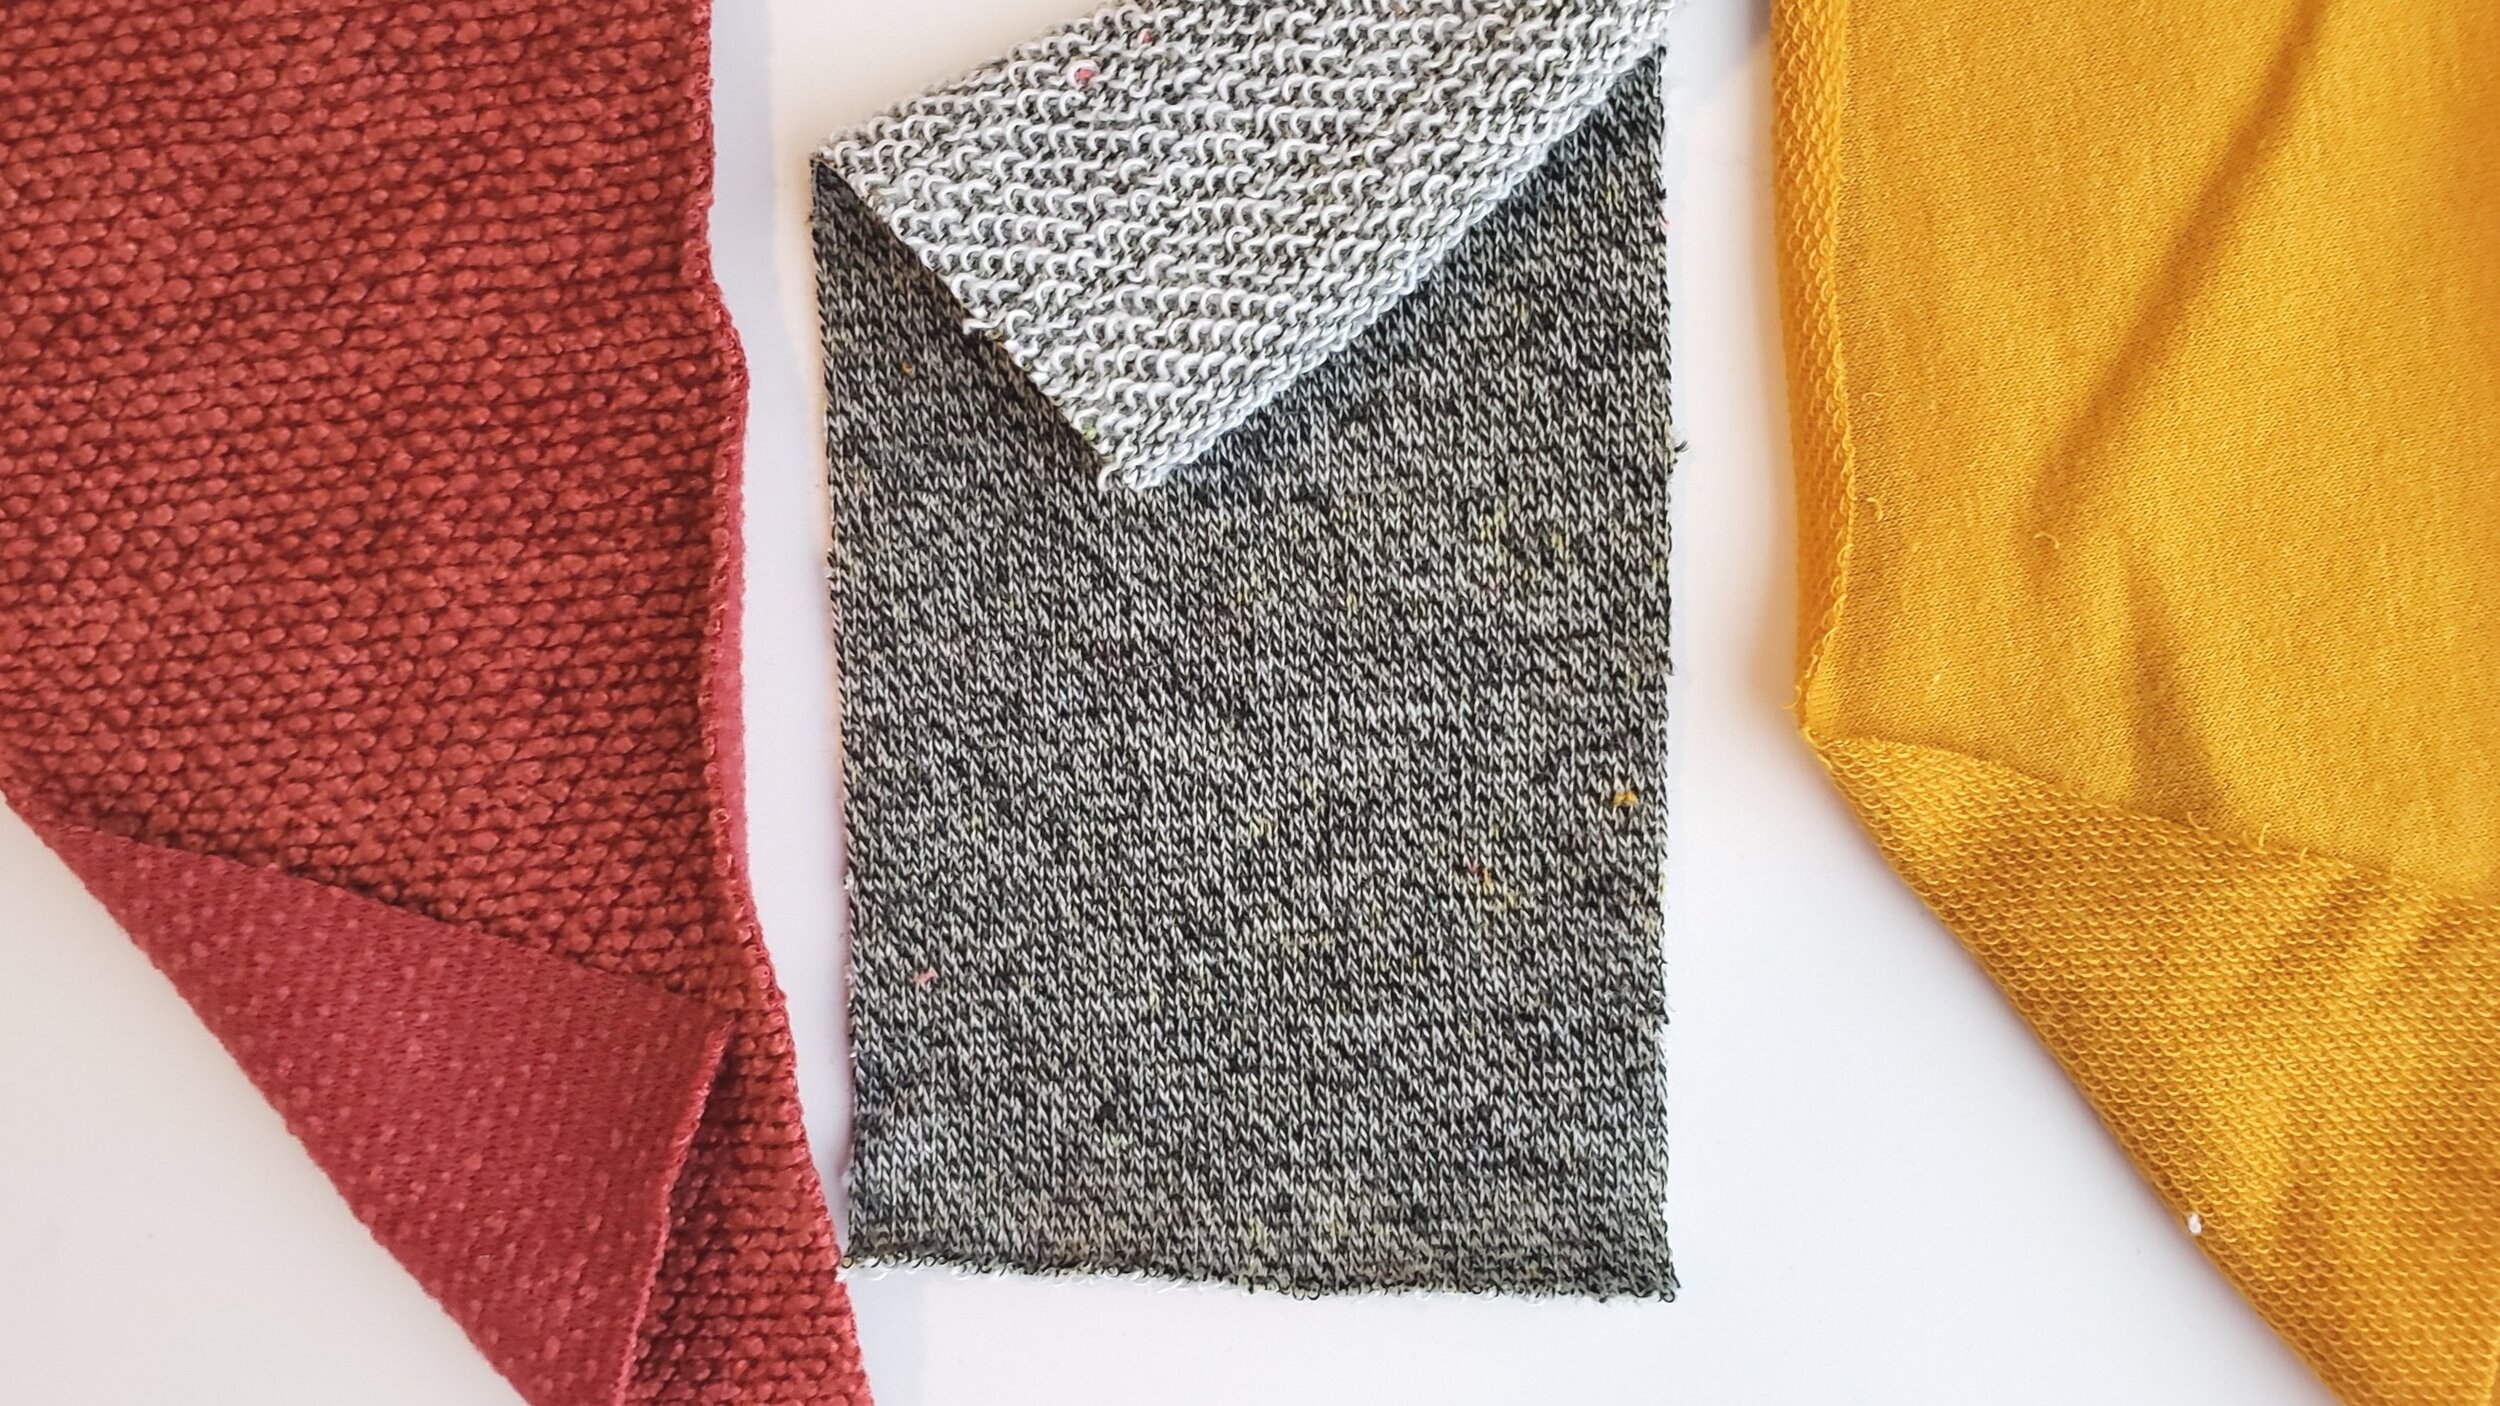 Left to right: red chenille sweater knit, grey french terry, and yellow baby french terry